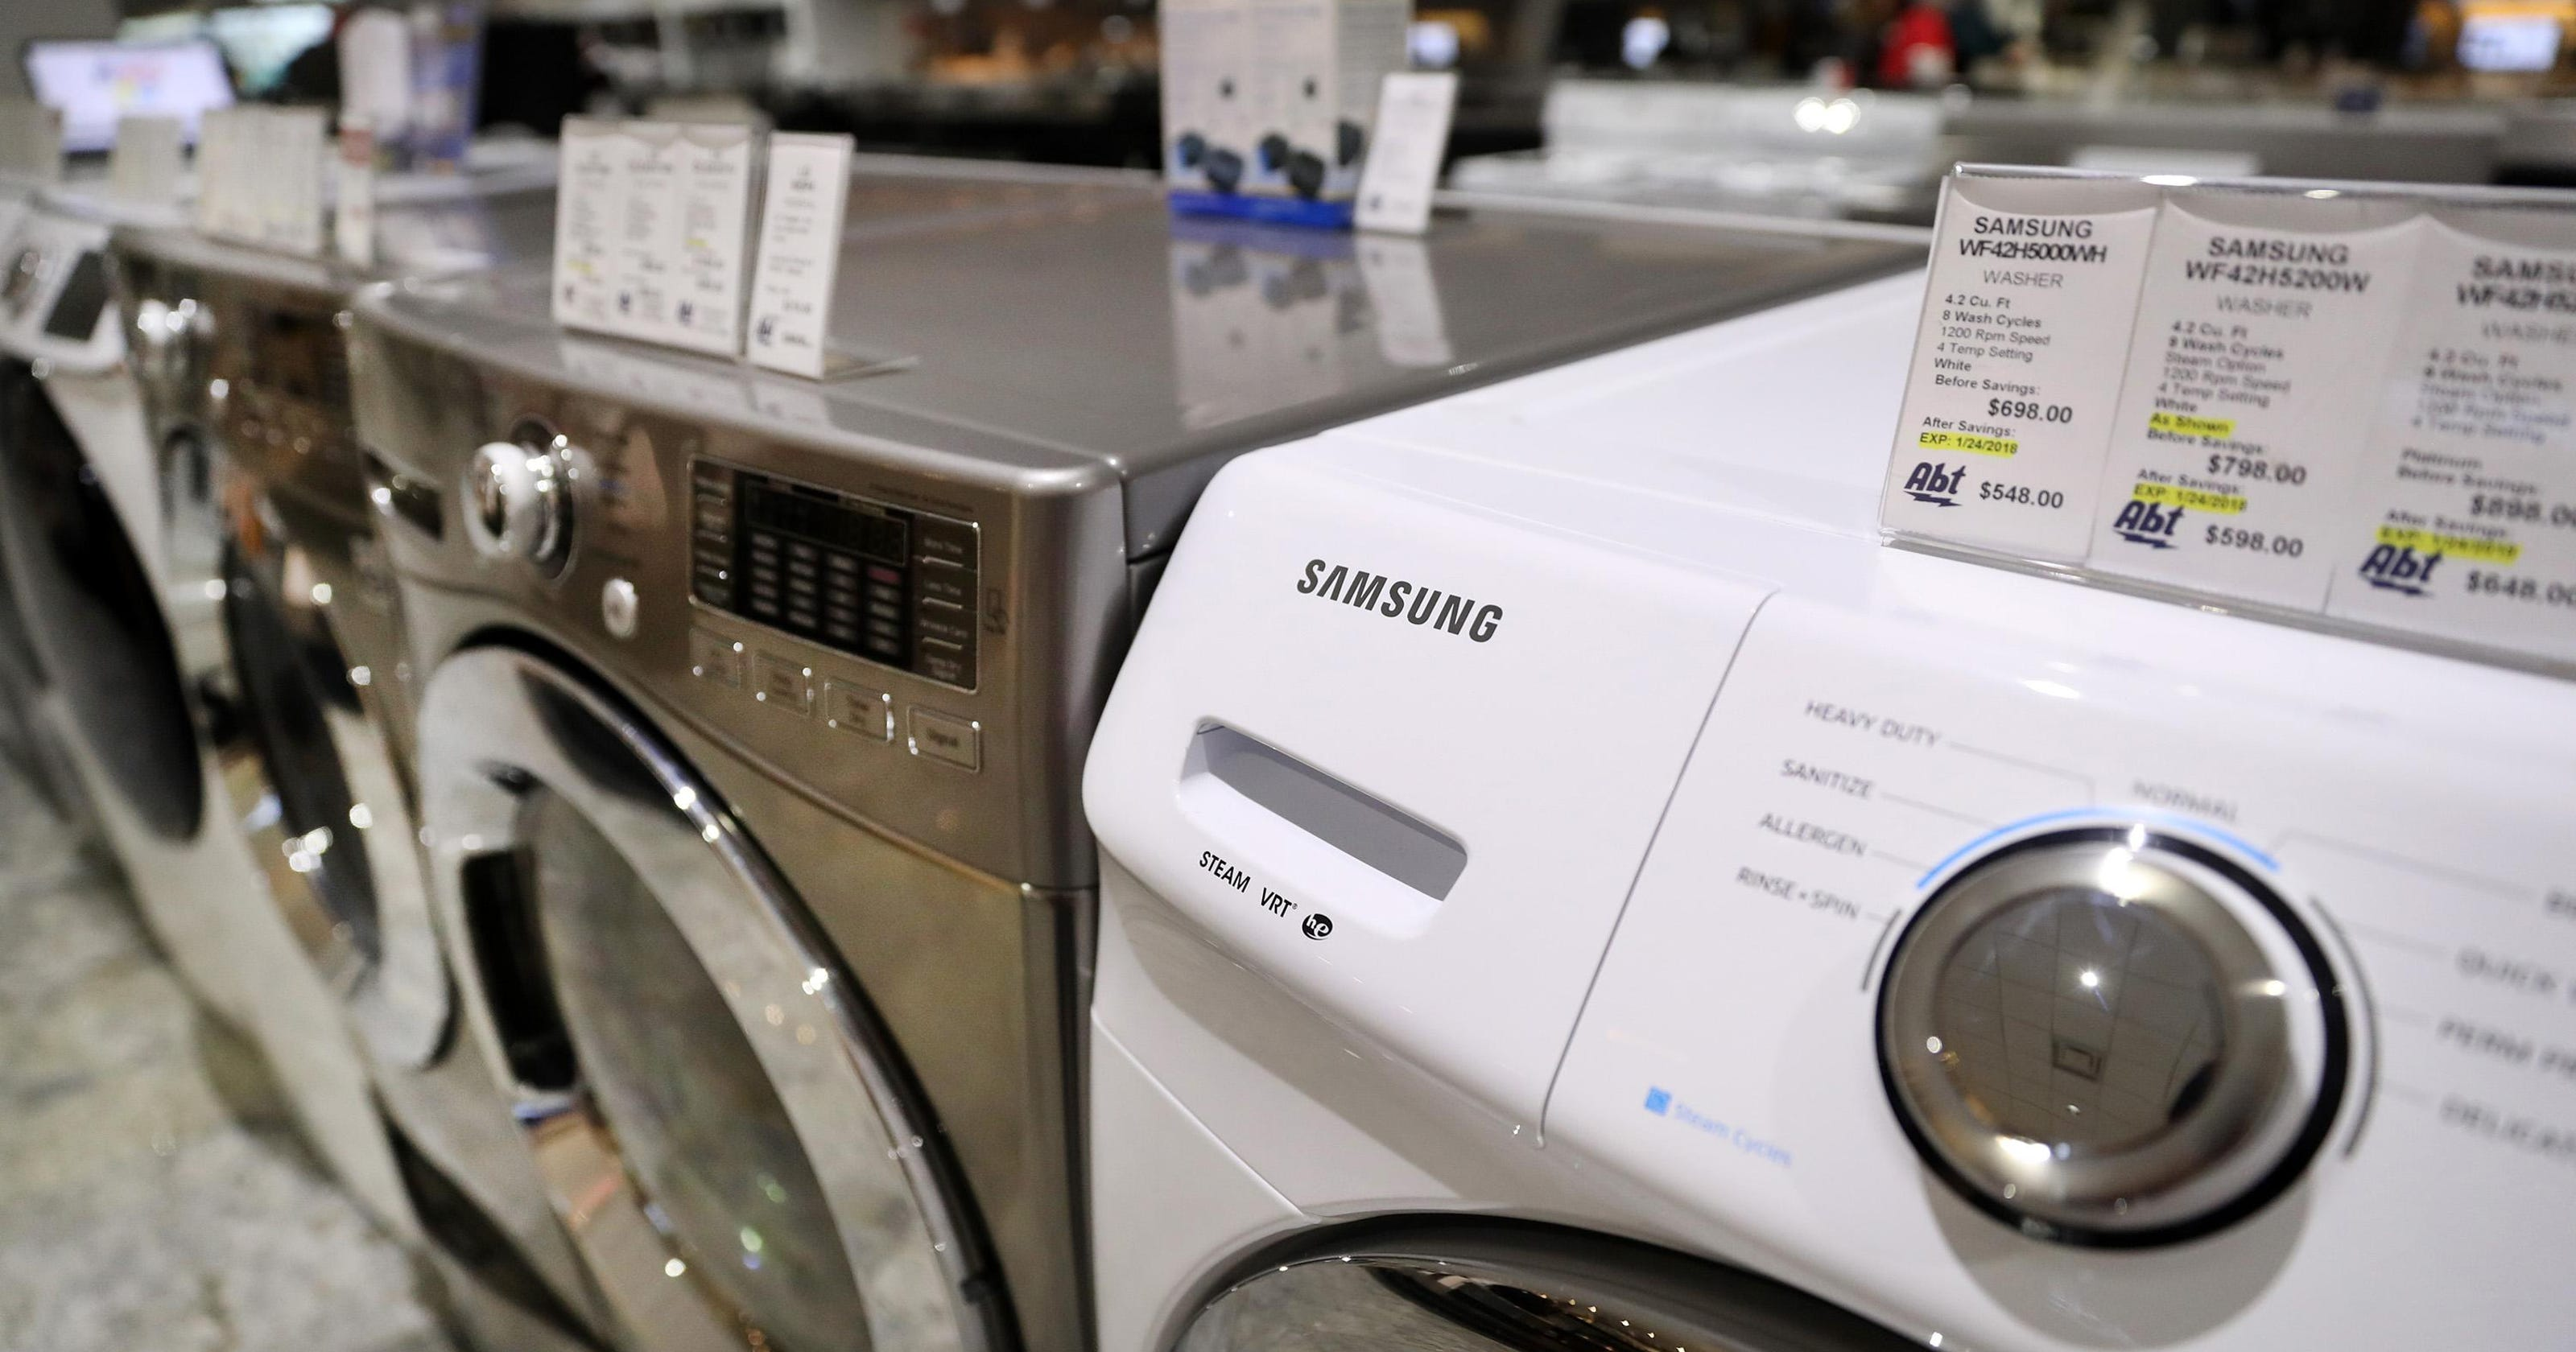 Get Ready To Pay More For A New Washing Machine - Abt washers